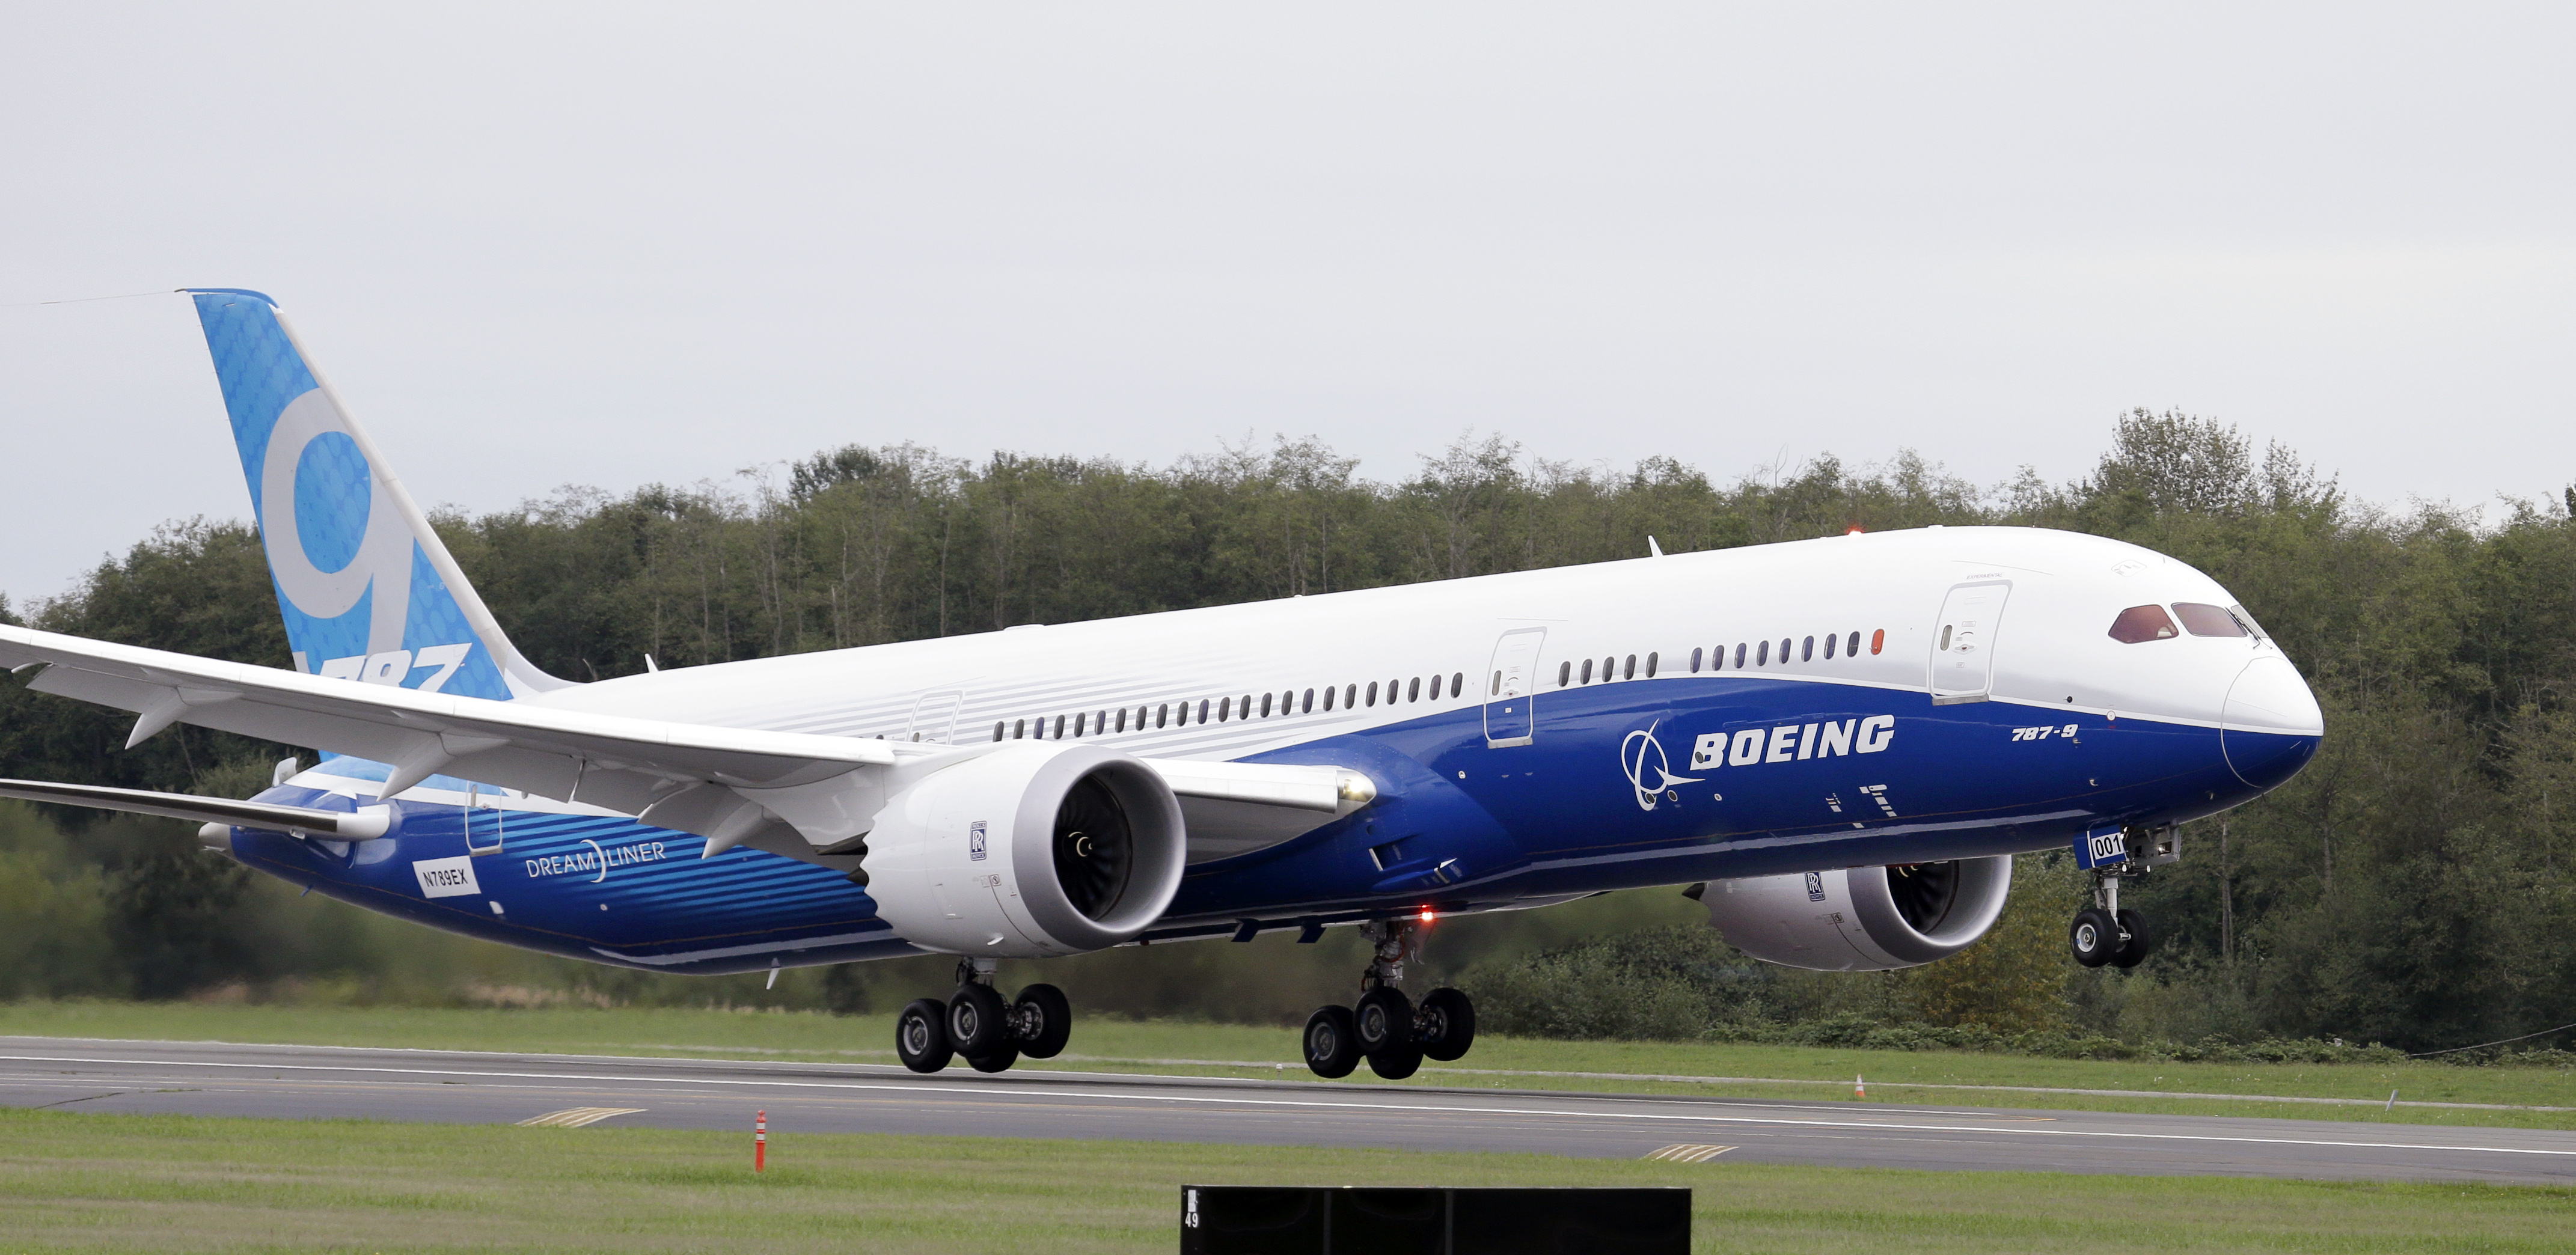 Air new zealand to launch worlds first route for 787 9 dreamliner air new zealand to launch worlds first route for 787 9 dreamliner cnn travel publicscrutiny Images